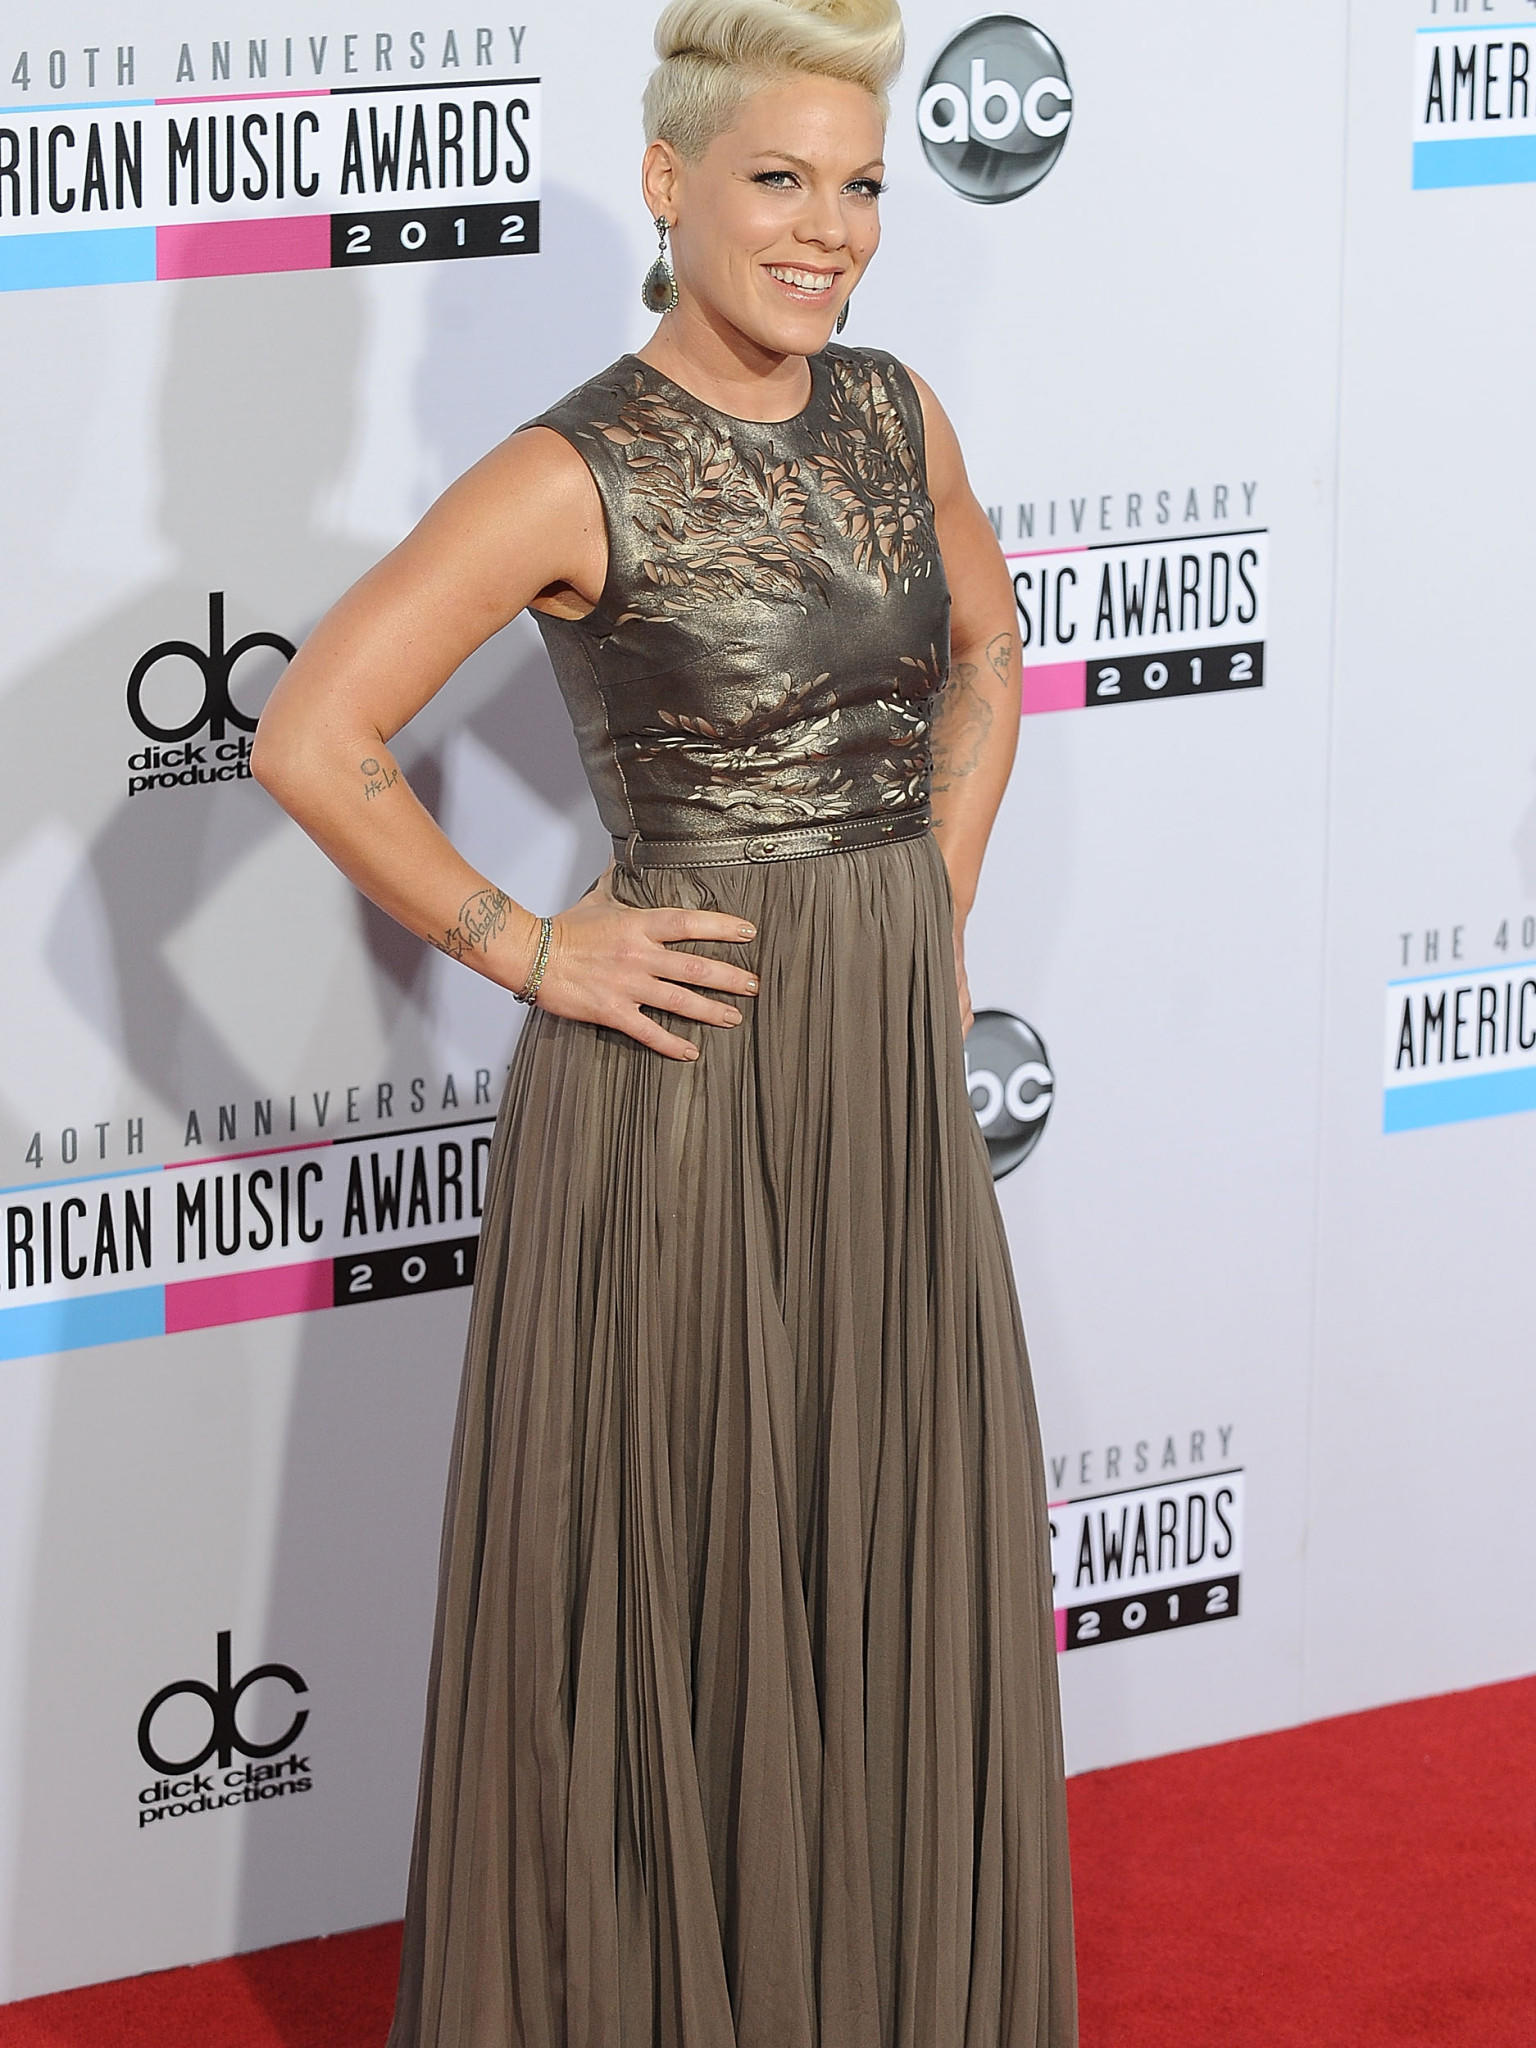 American Music Awards 2012 Roter Teppich